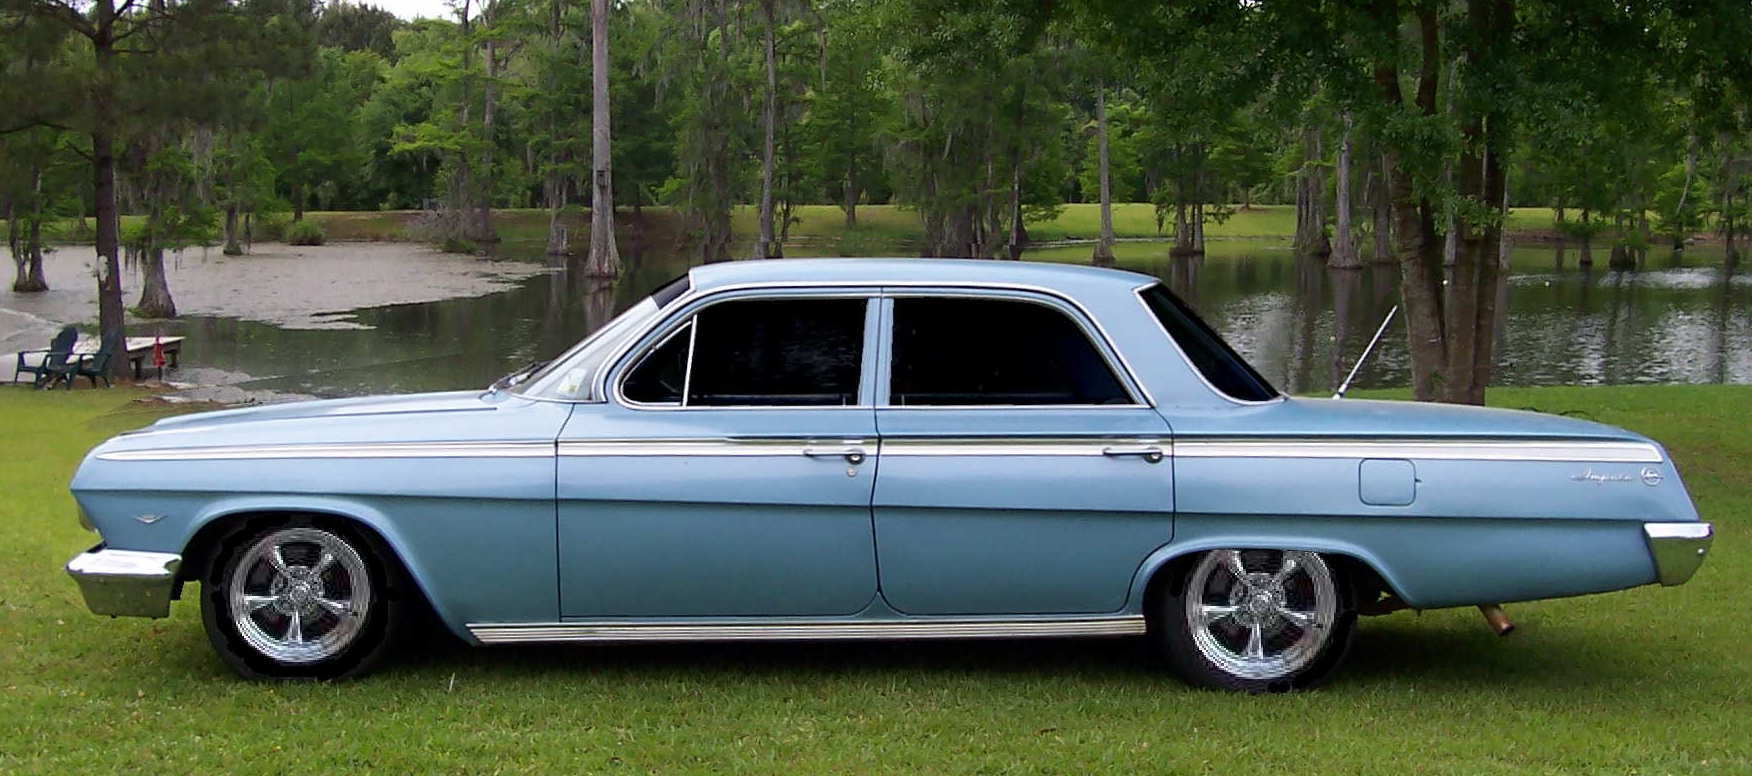 Click image for larger version  Name:hunter's car (4).jpg Views:162 Size:151.1 KB ID:4796